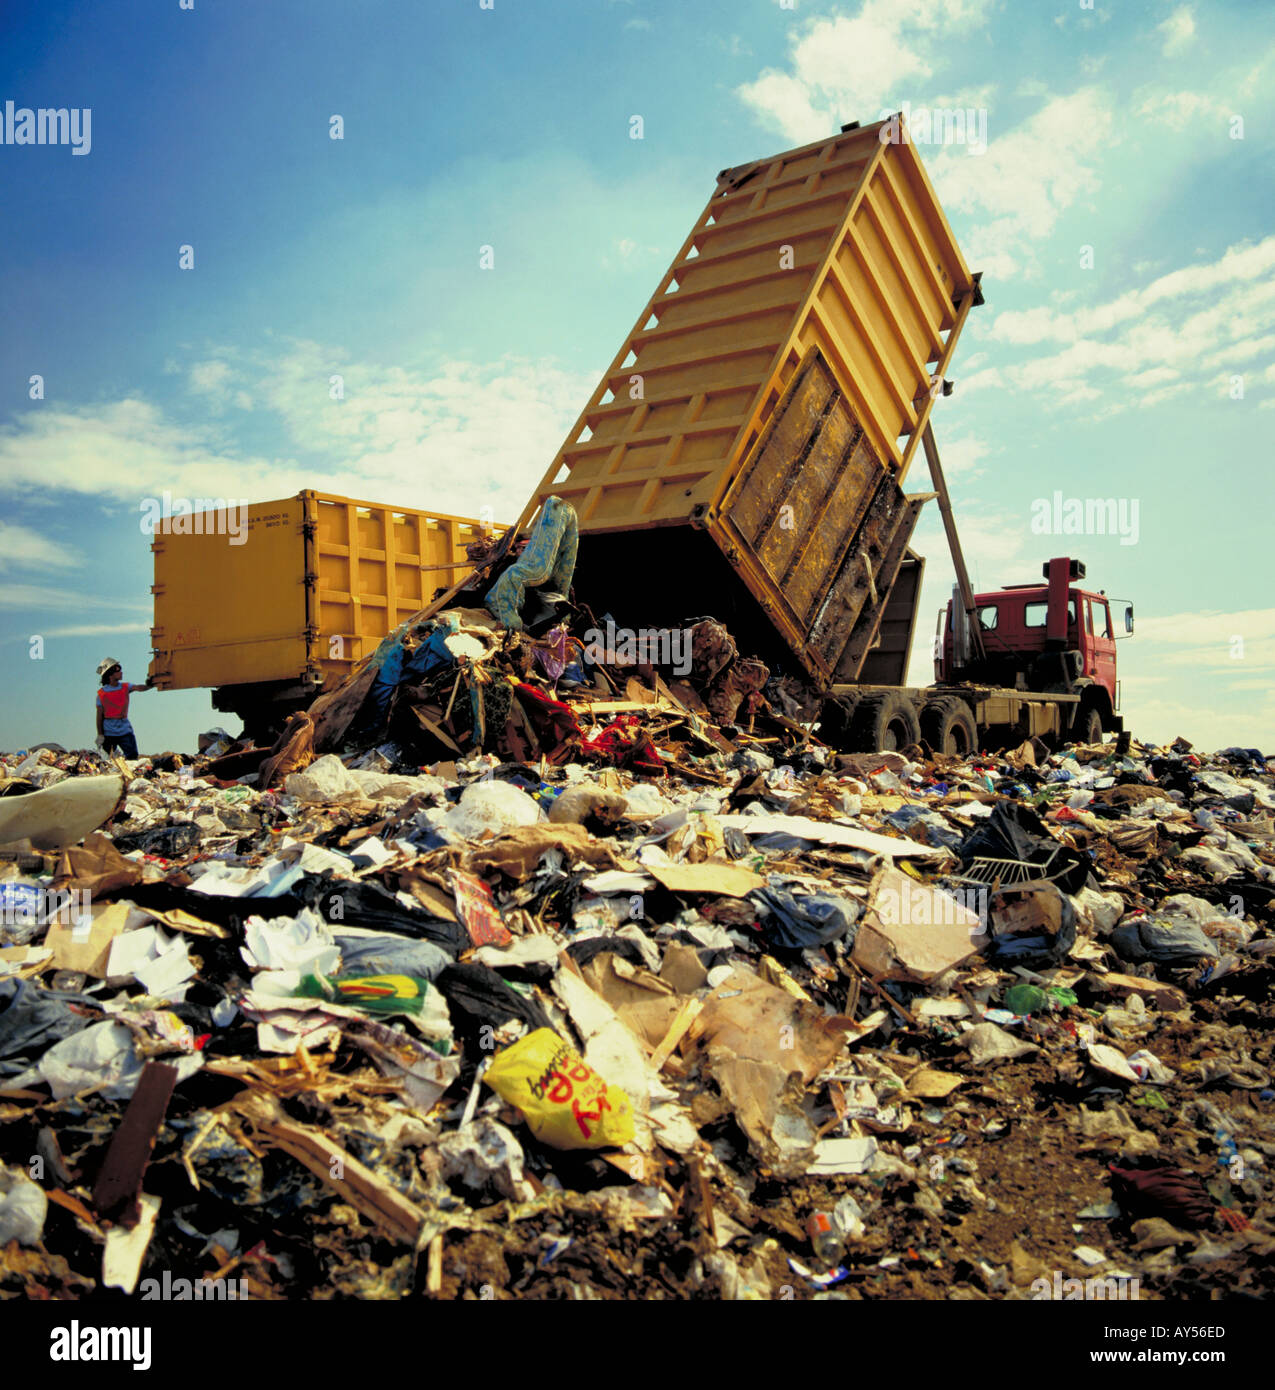 Household rubbish being deposited at landfill site - Stock Image